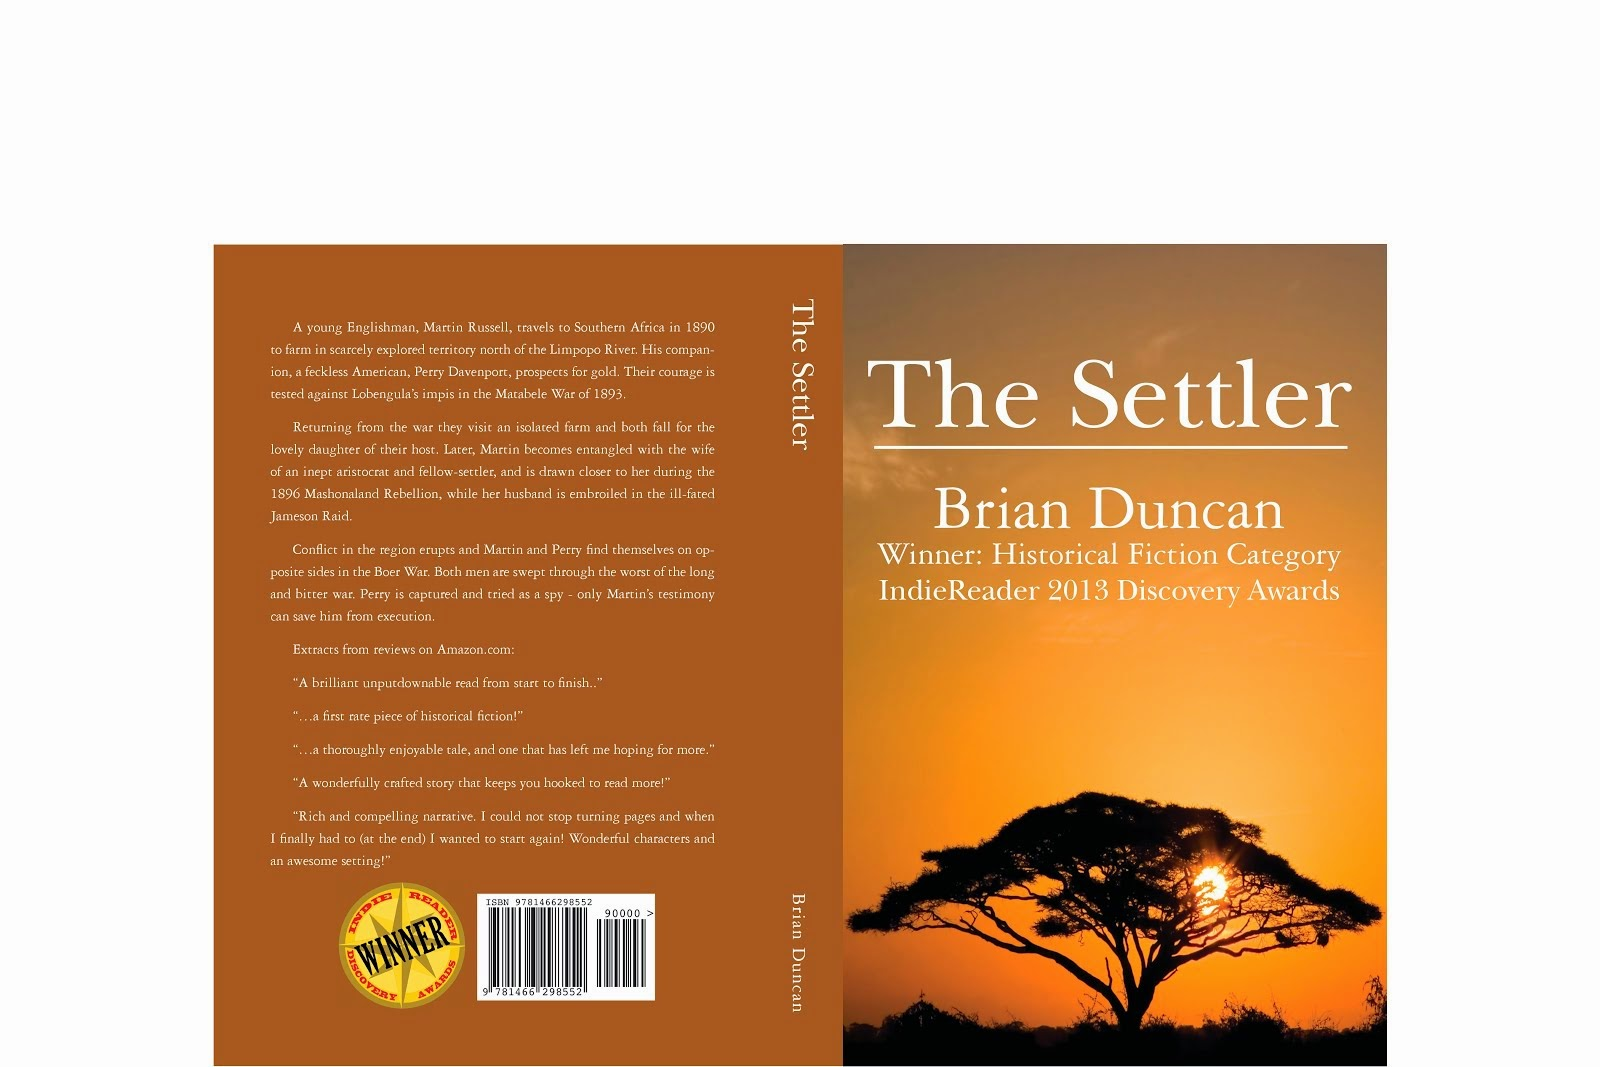 The Lion and Leopard Trilogy of historical novels